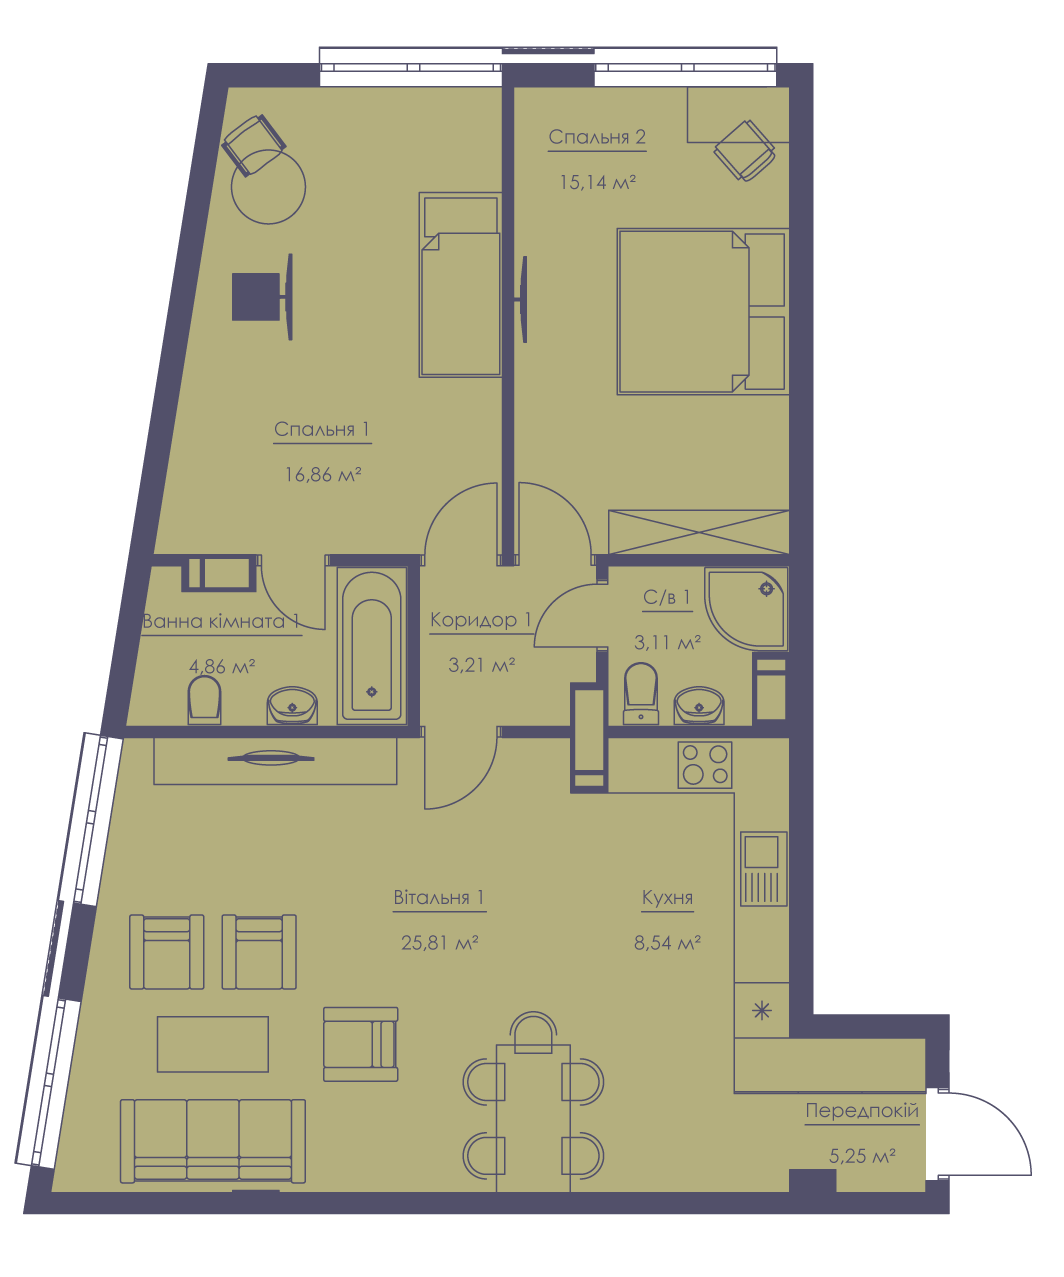 Apartment layout KV_151_3.3n_1_1_7-1